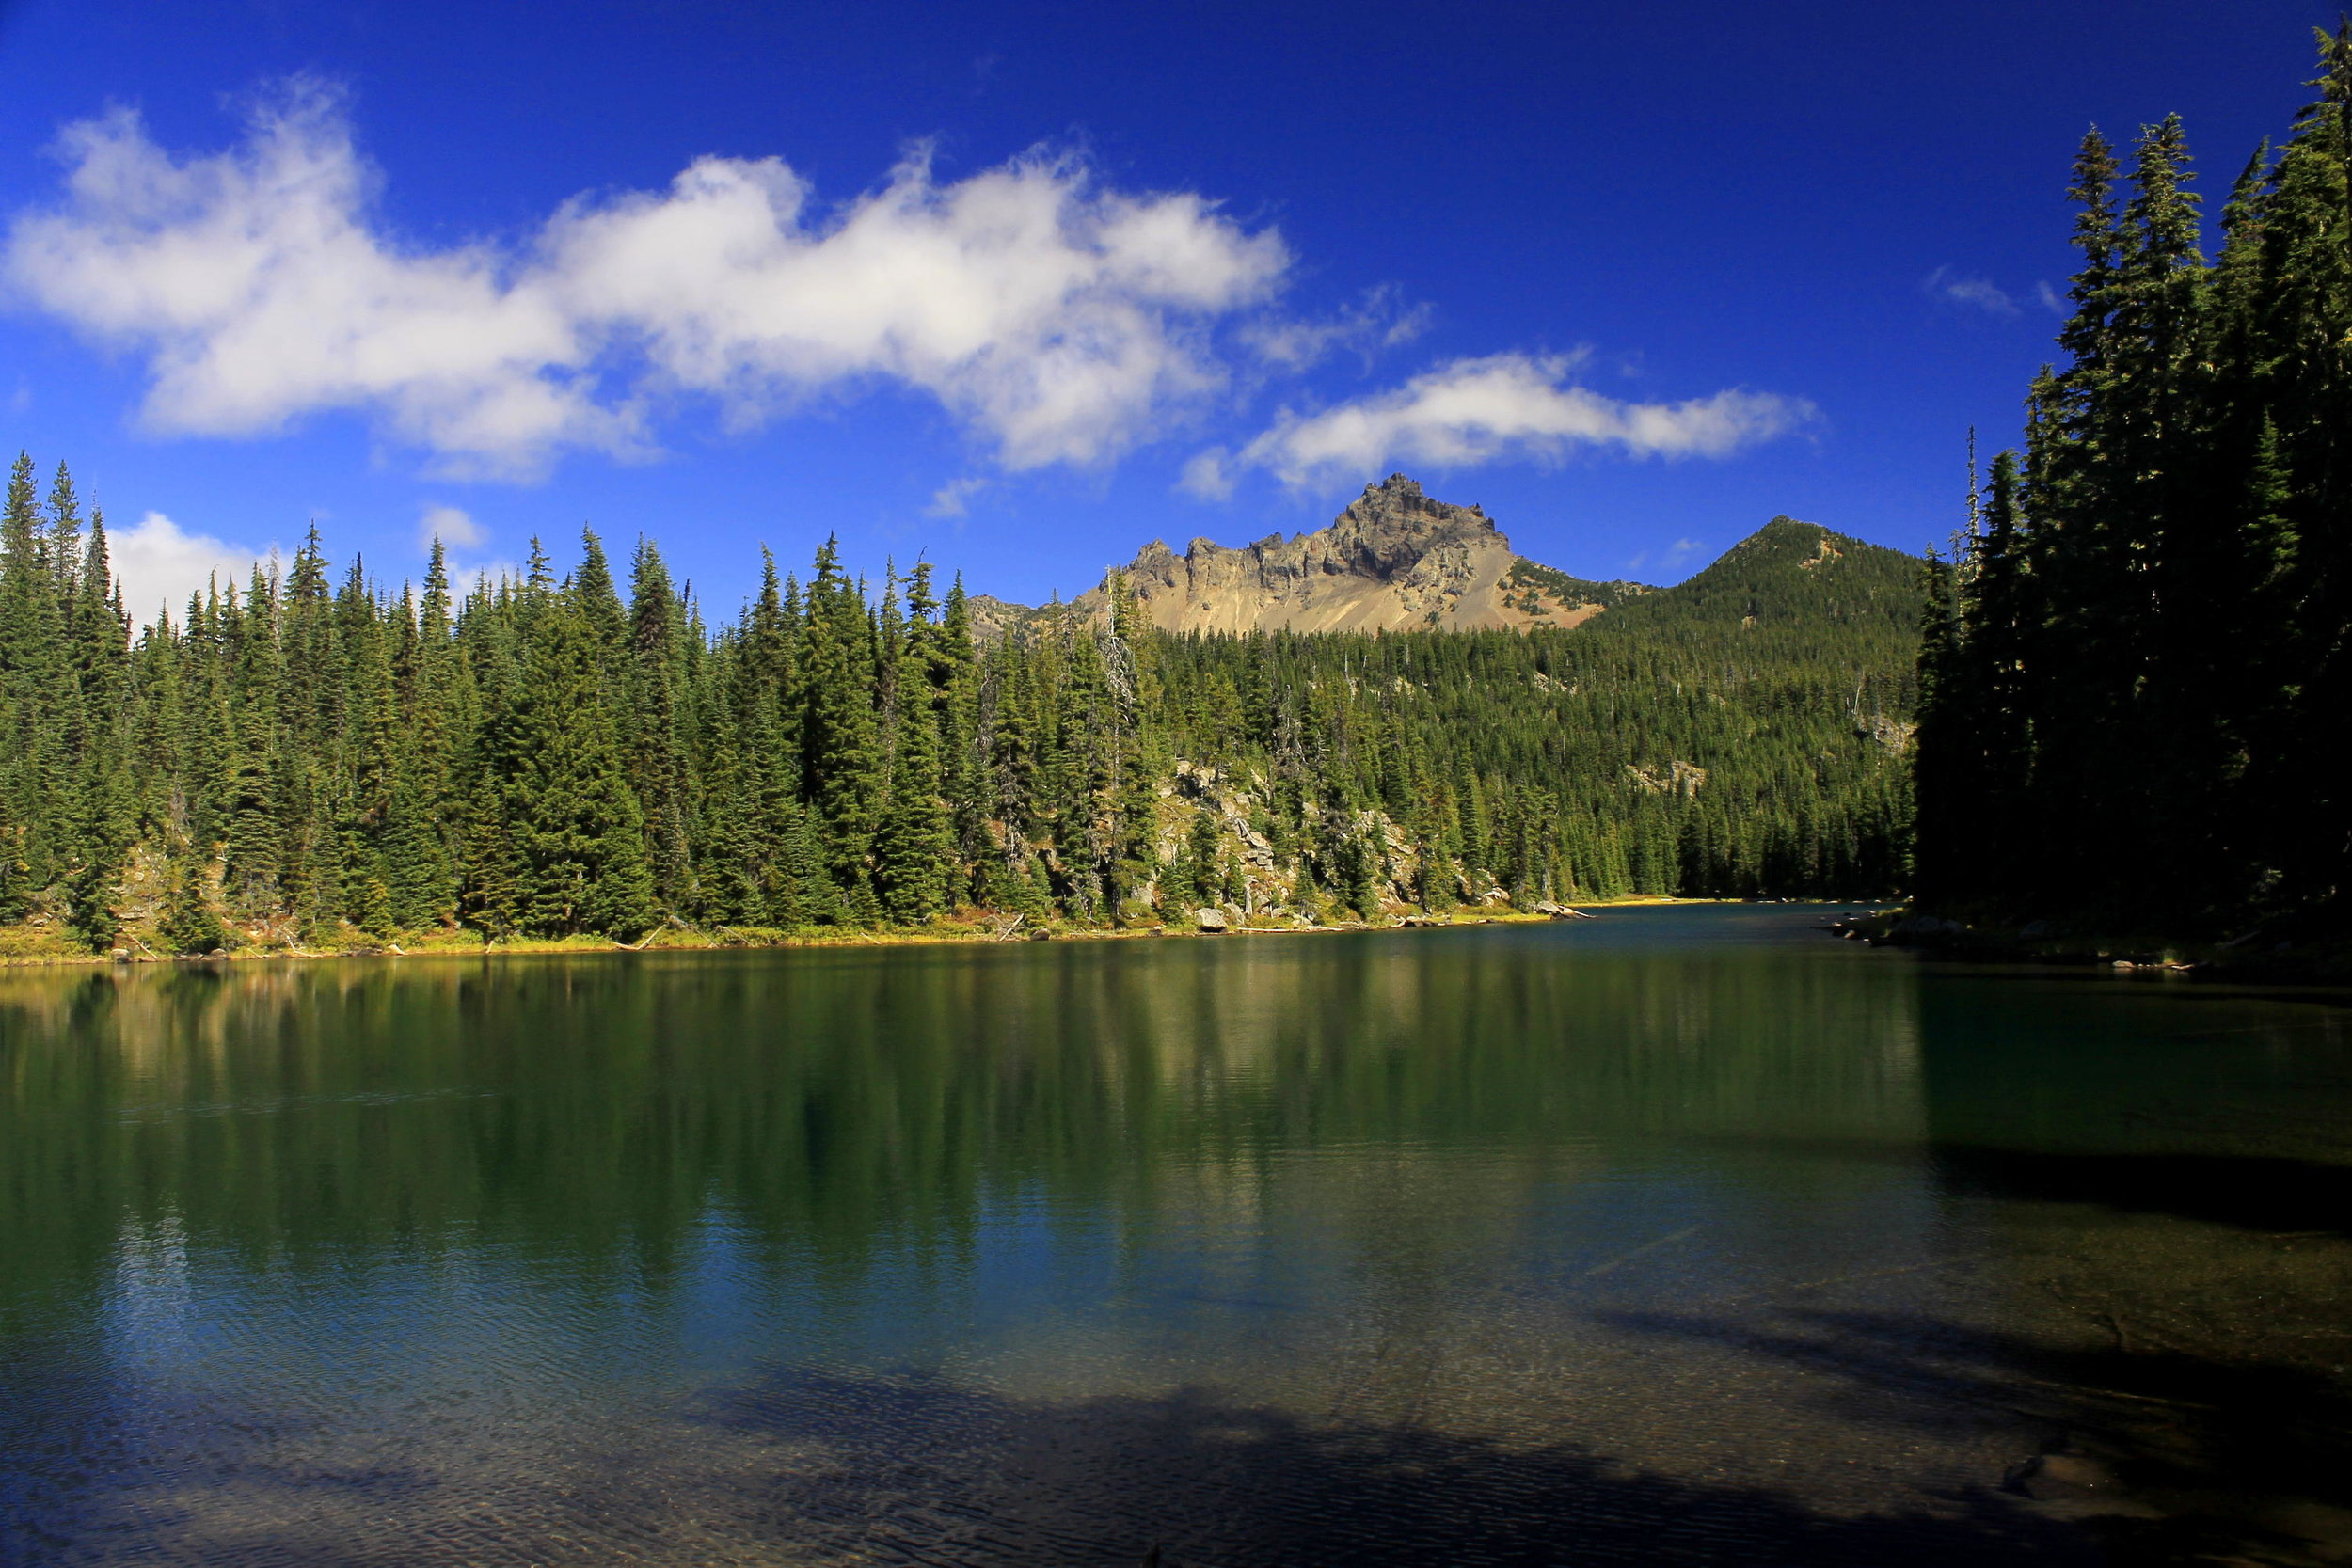 Three-Fingered Jack and Lower Berley Lake. The lake is only a short distance off the trail to Santiam Lake but is not particularly easy to find.